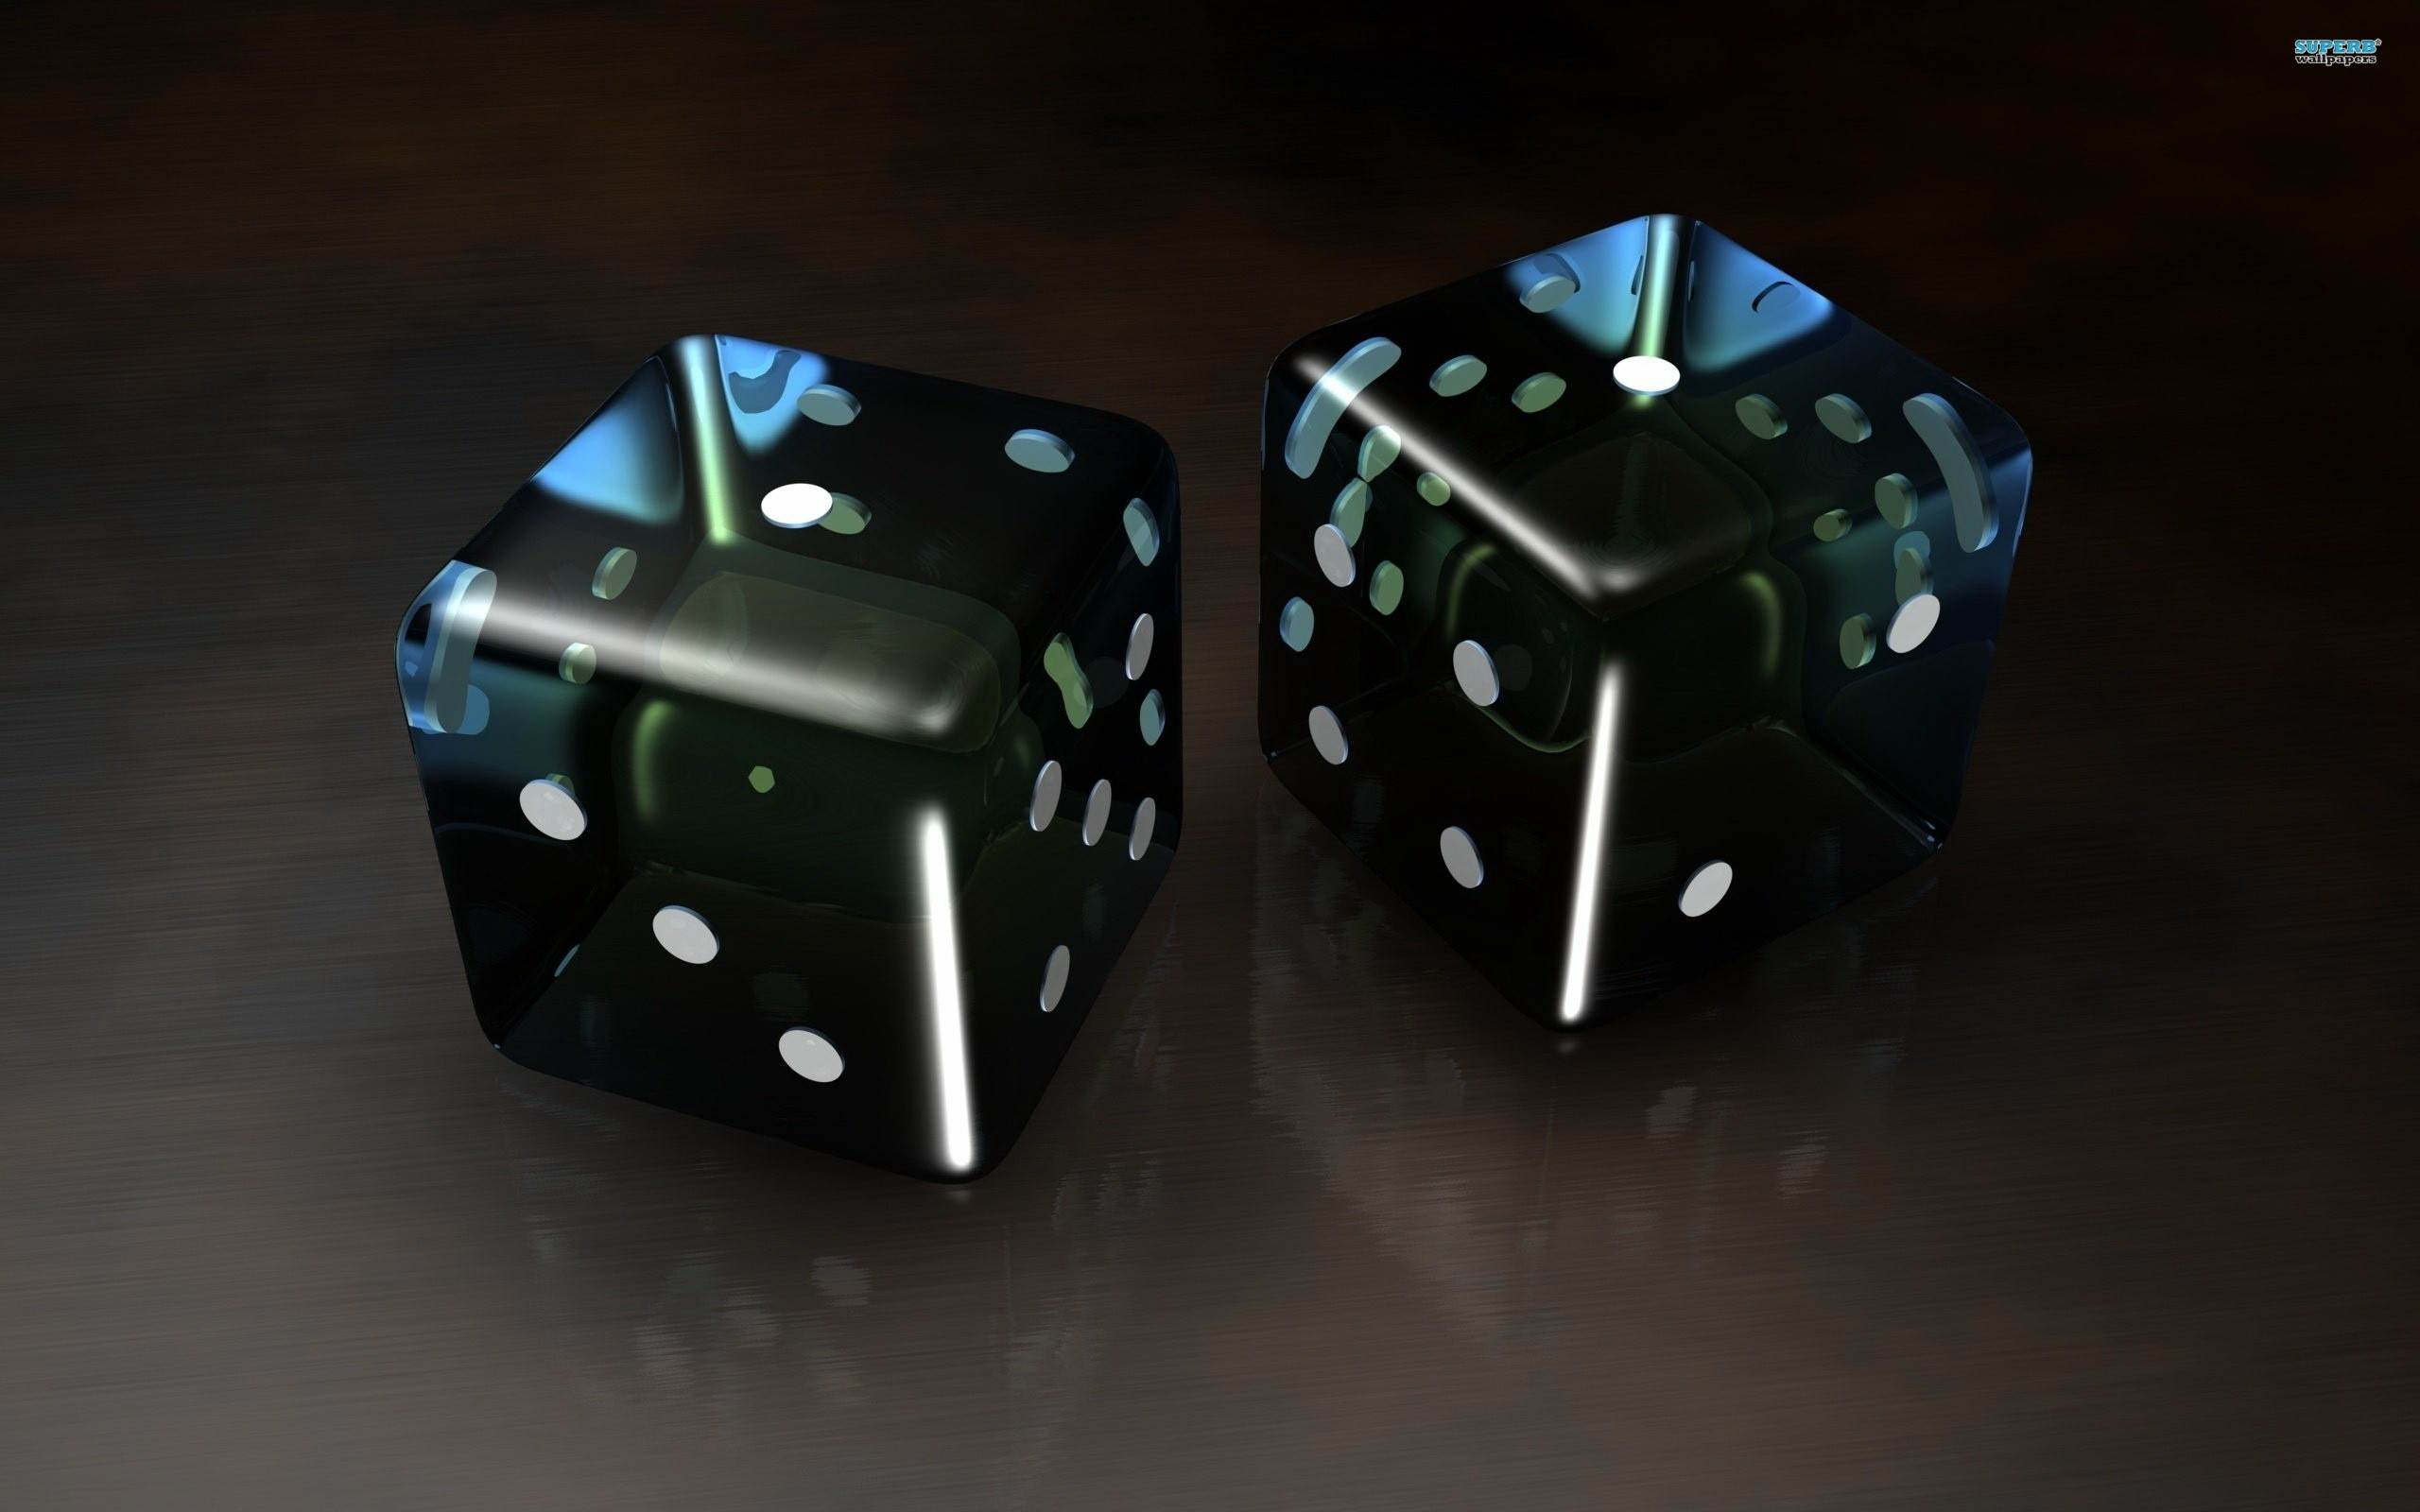 2560x1600 black 3d dice desktop pc and mac wallpaper for Black 3d wallpaper